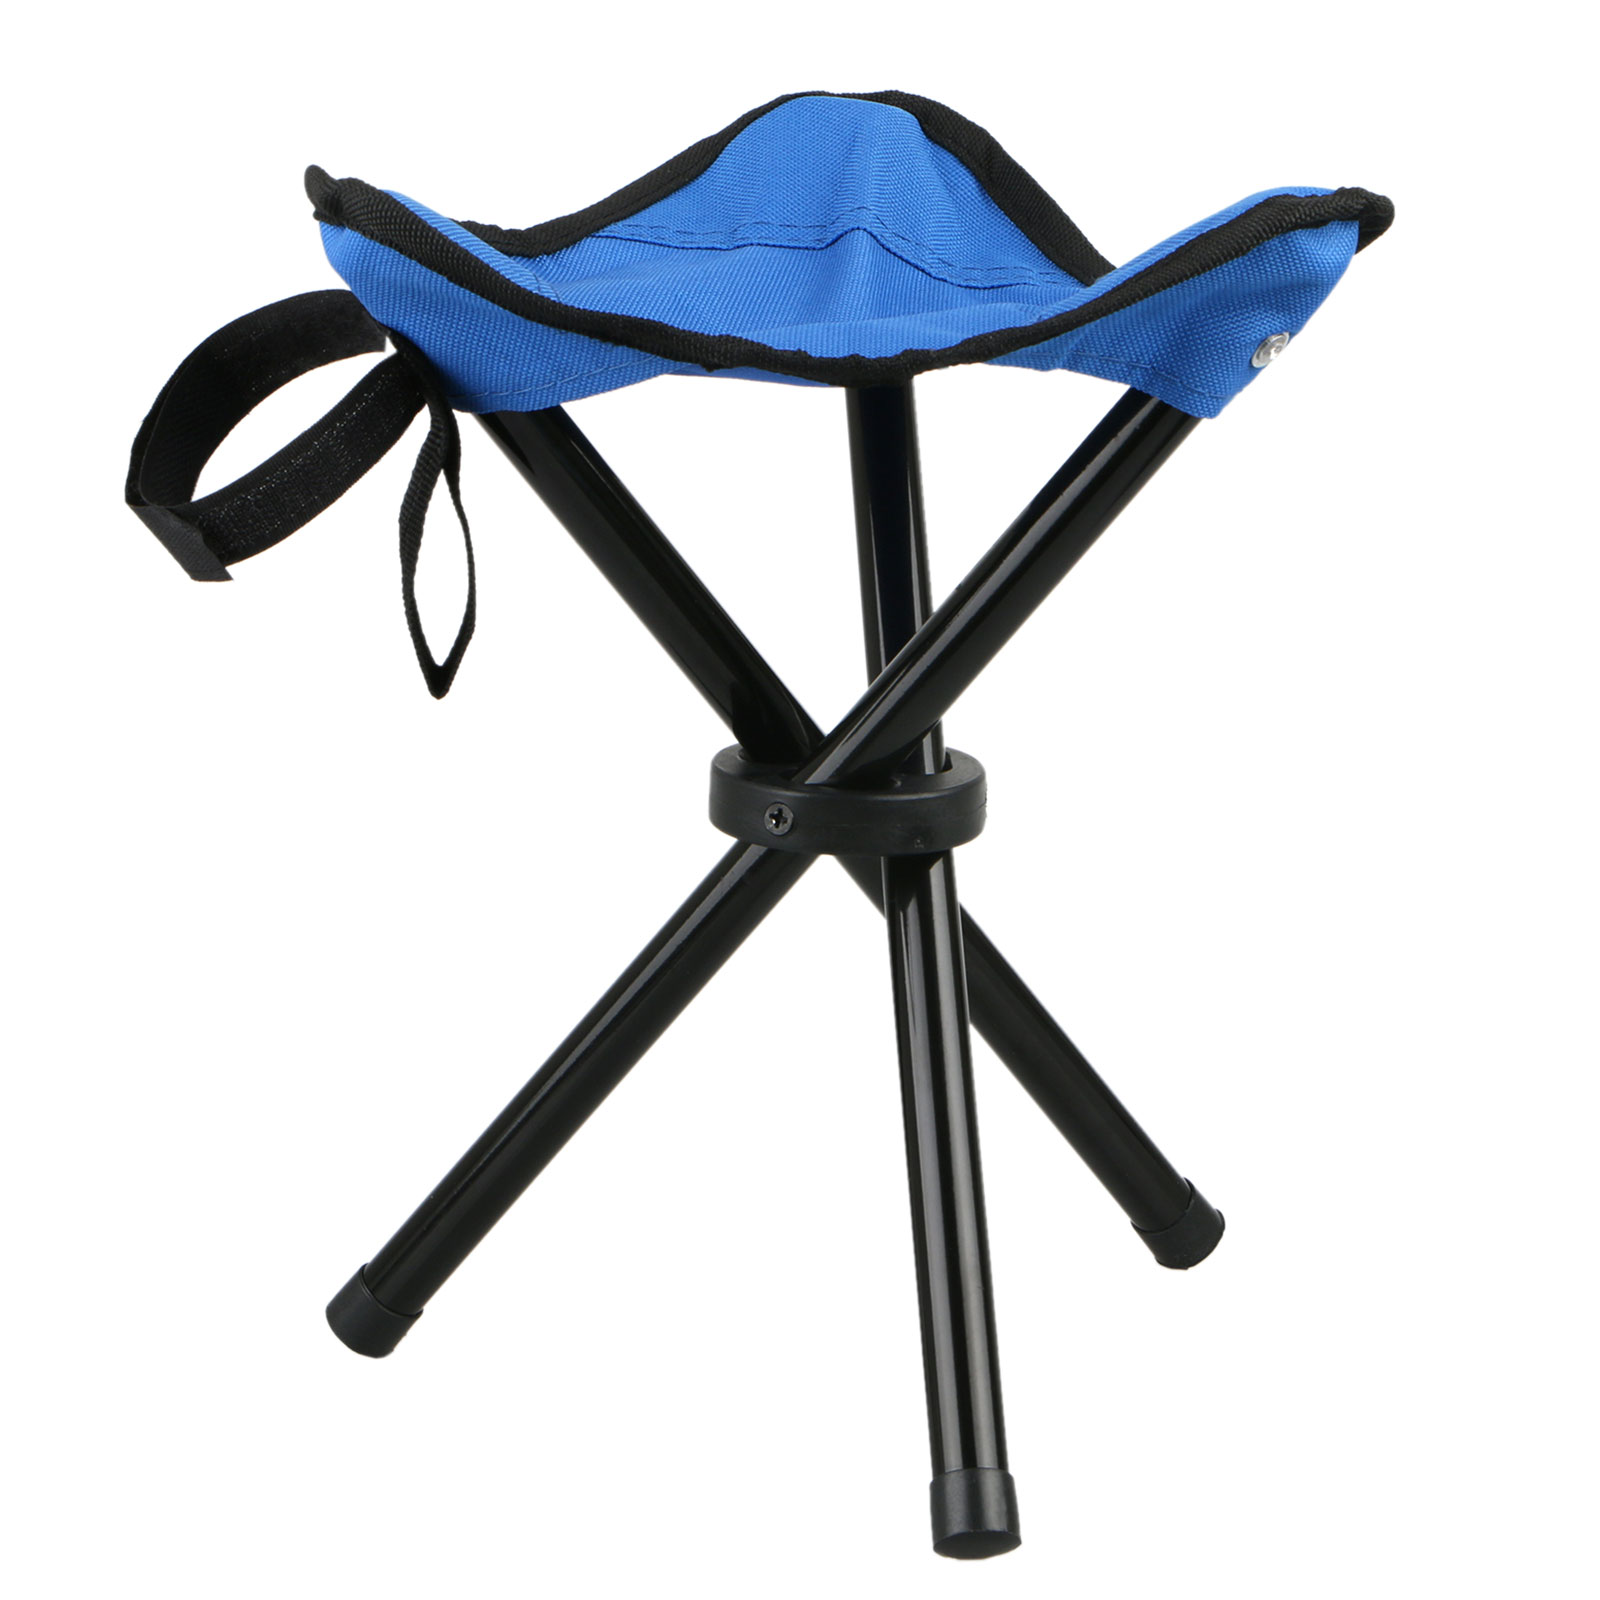 Portable Stool Large Slacker Chair Portable Tripod Stool Folding Stool With Carrying Case For Outdoor Camping Walking Hunting Hiking Fishing Travel